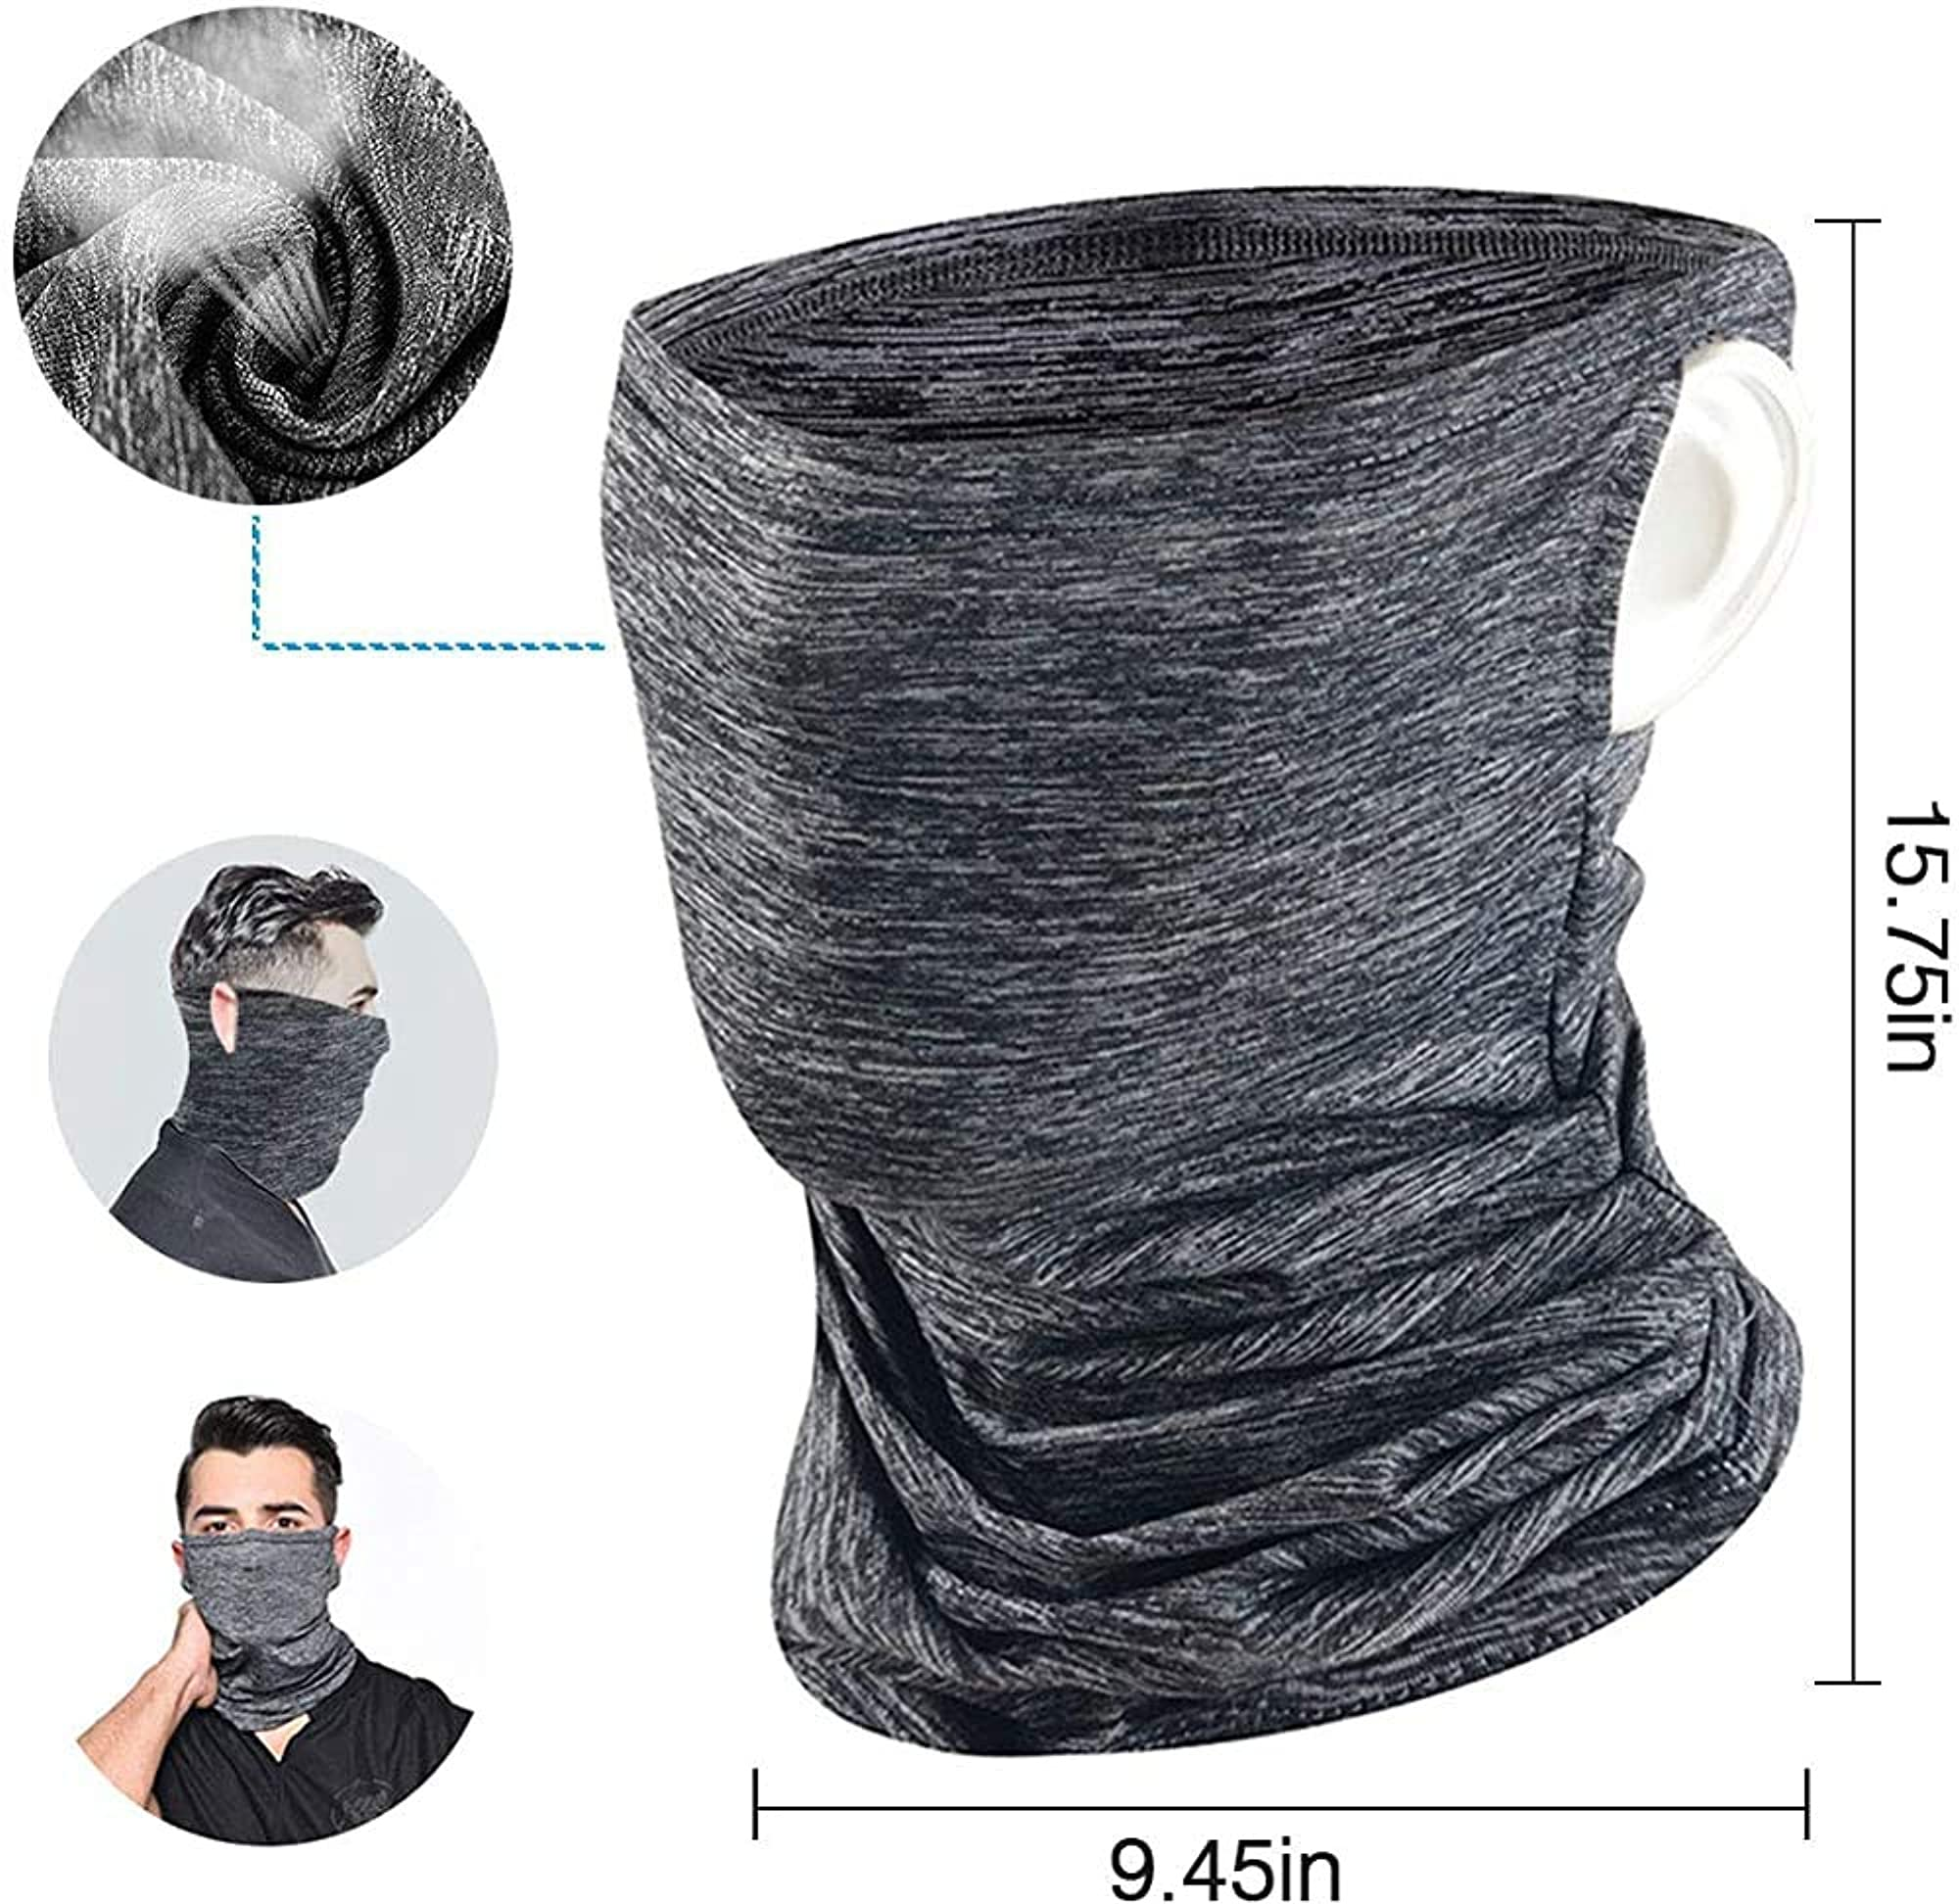 Uv Protection Balaclava/Neck Gaiter/Face Bandana